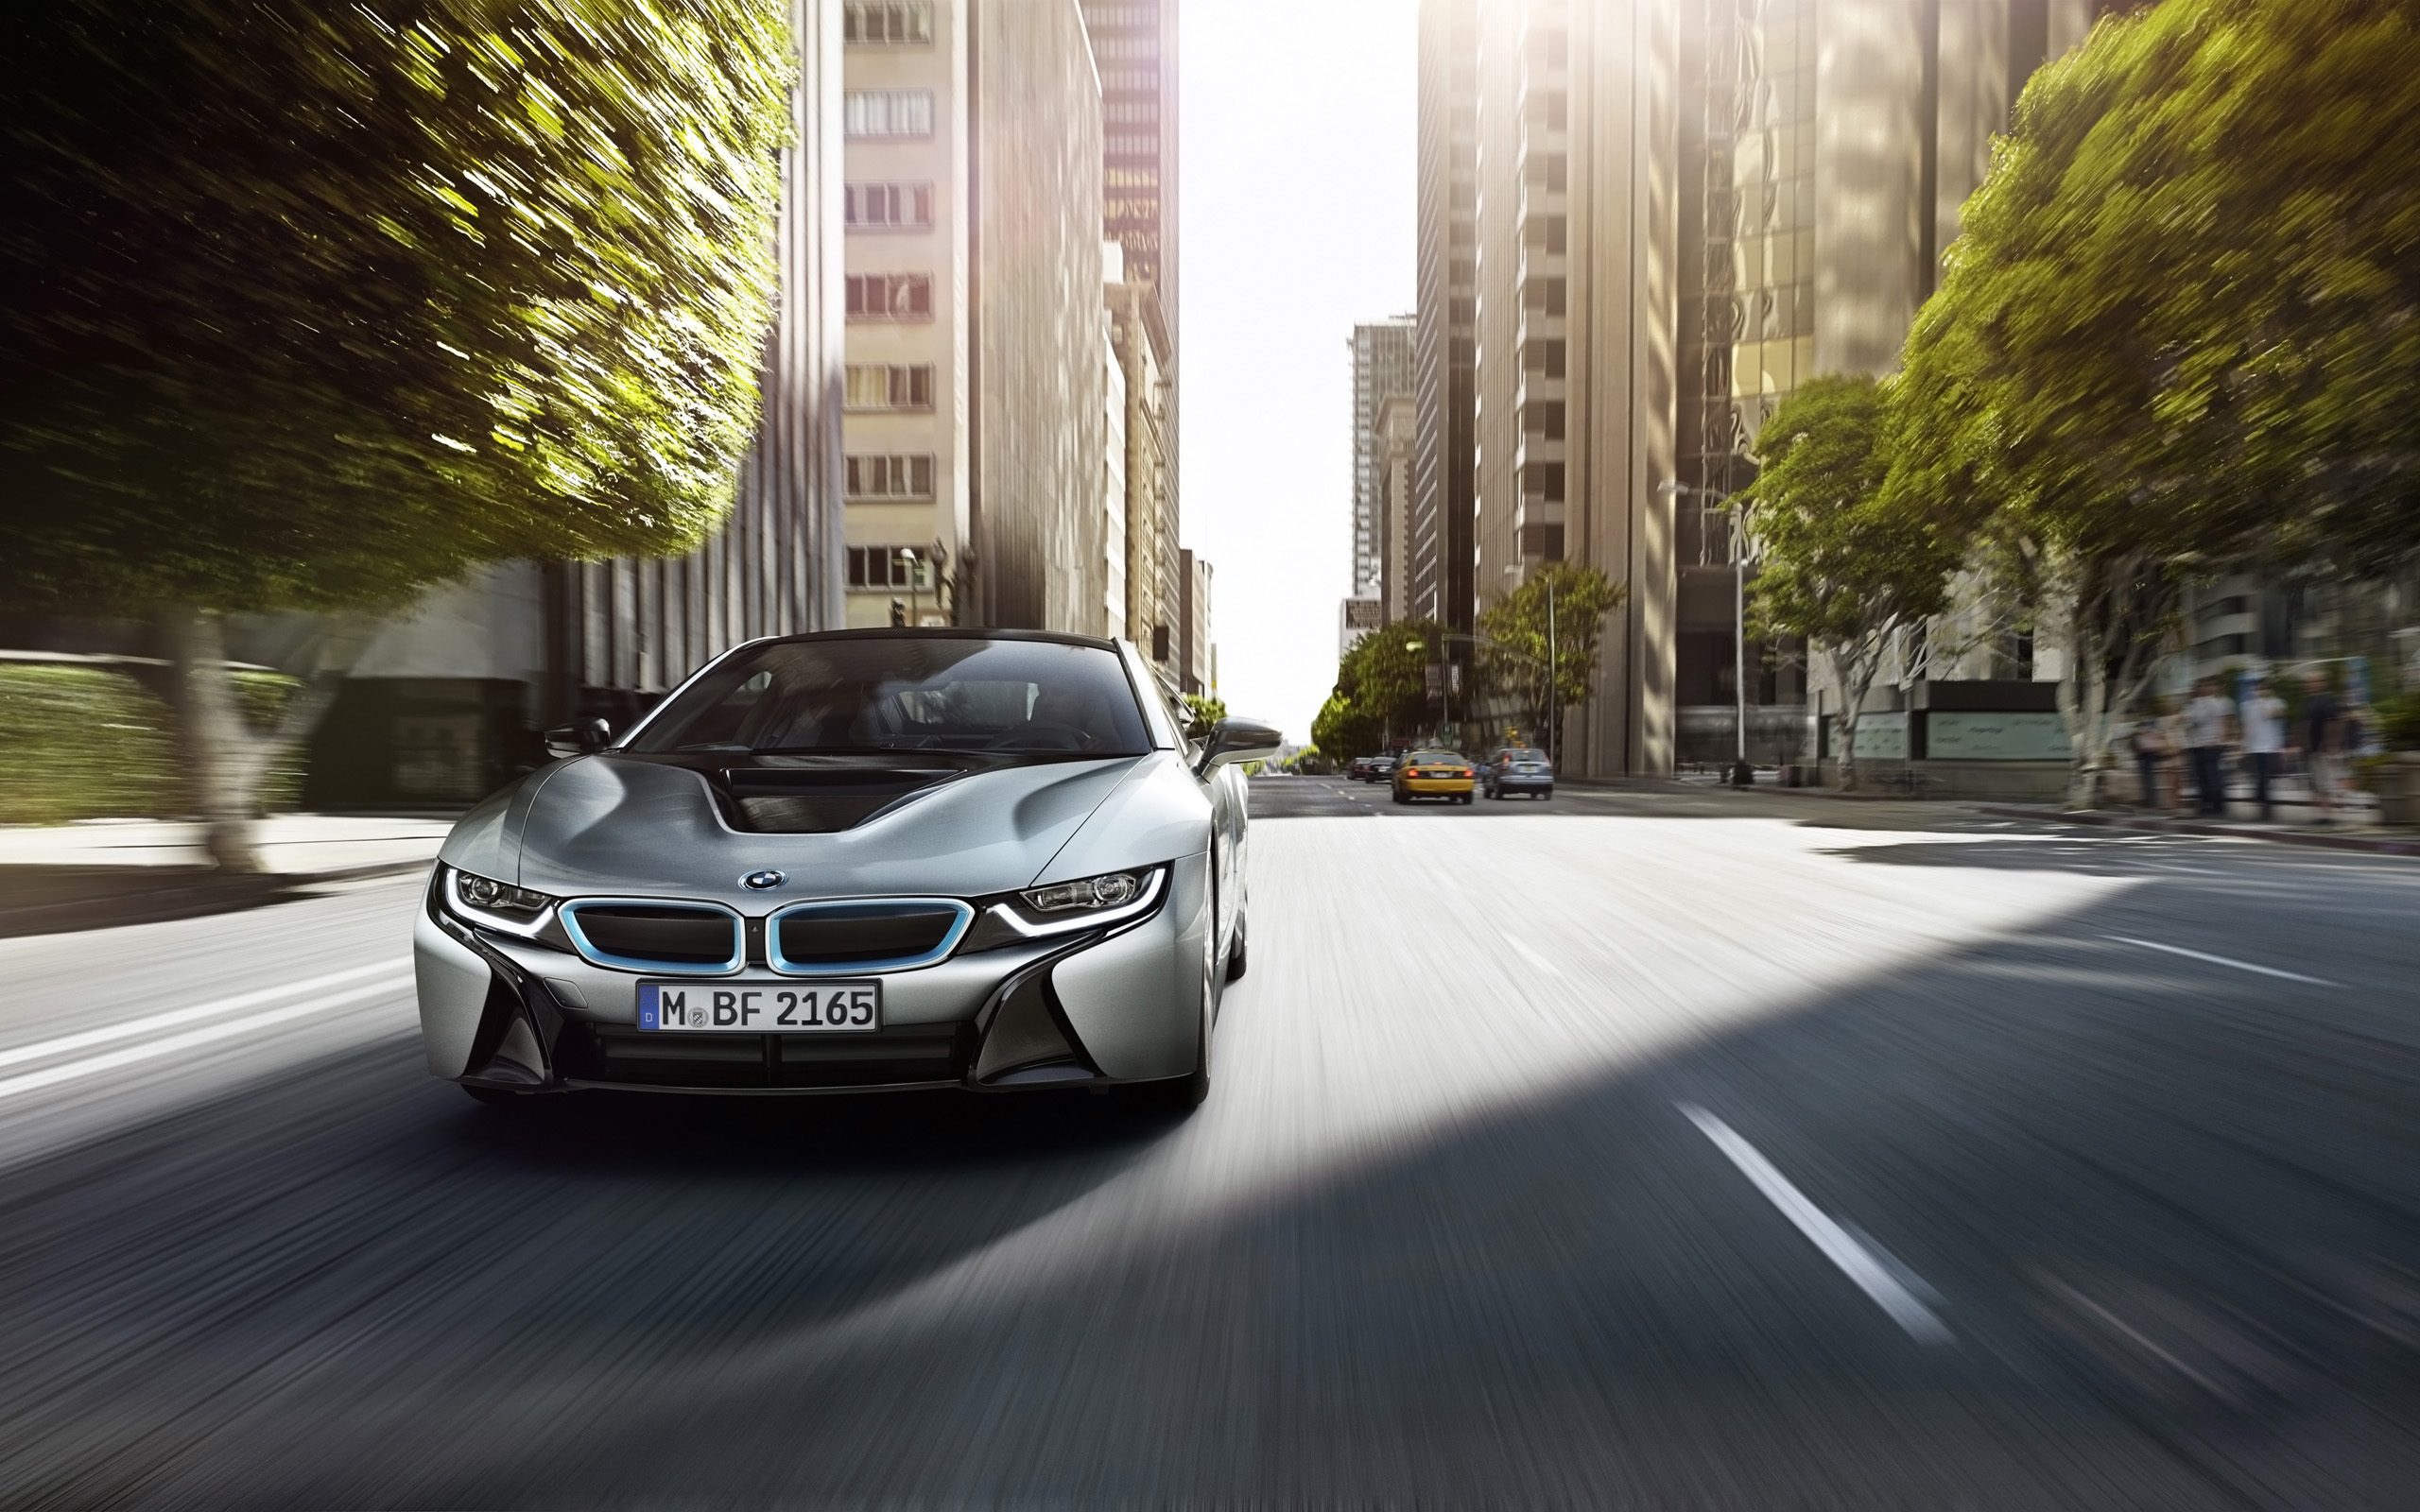 2015 Bmw I8 7 Wallpaper Hd Car Wallpapers Id 3829